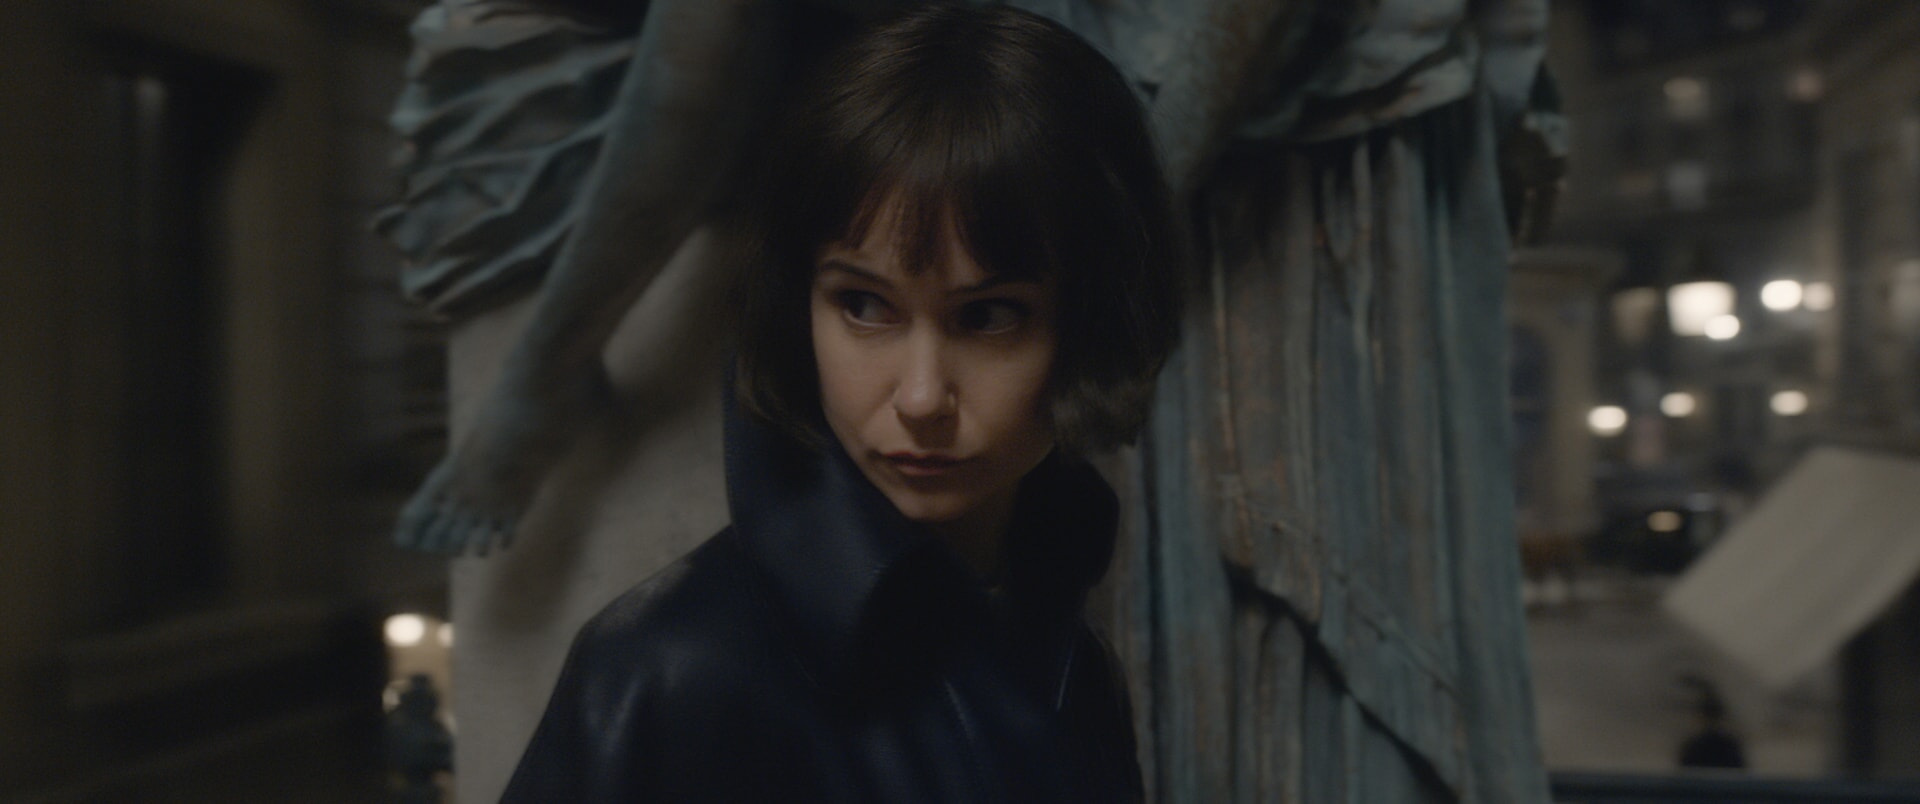 "KATHERINE WATERSTON as Tina Goldstein in Warner Bros. Pictures' fantasy adventure ""FANTASTIC BEASTS: THE CRIMES OF GRINDELWALD,"" a Warner Bros. Pictures release"